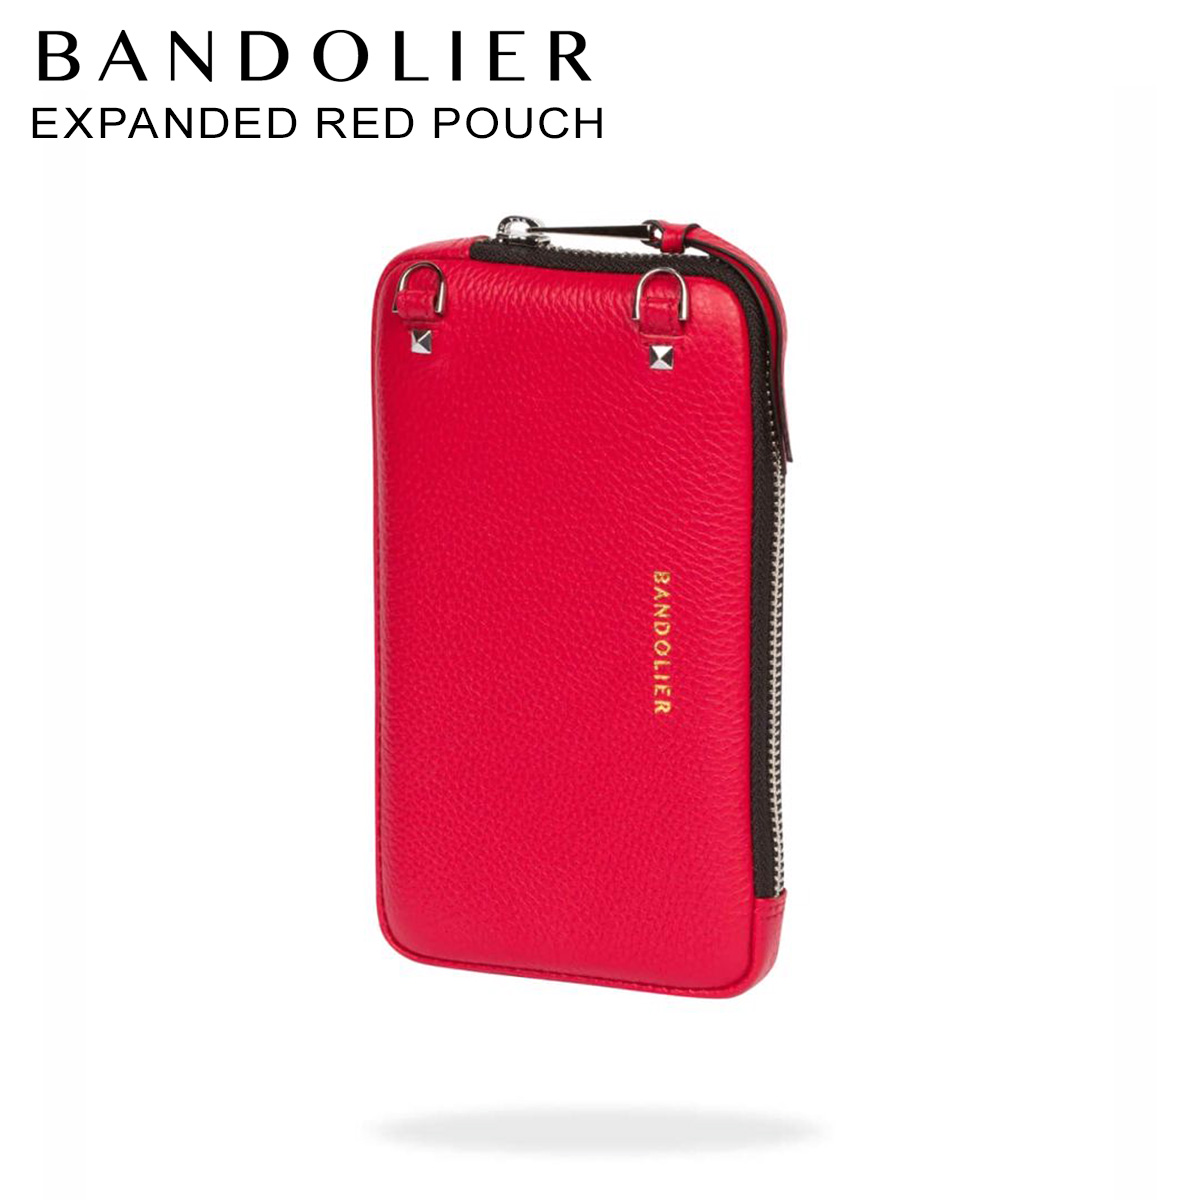 BANDOLIER バンドリヤー ポーチ スマホ 携帯 レディース EXPANDED RED POUCH レッド 21cas